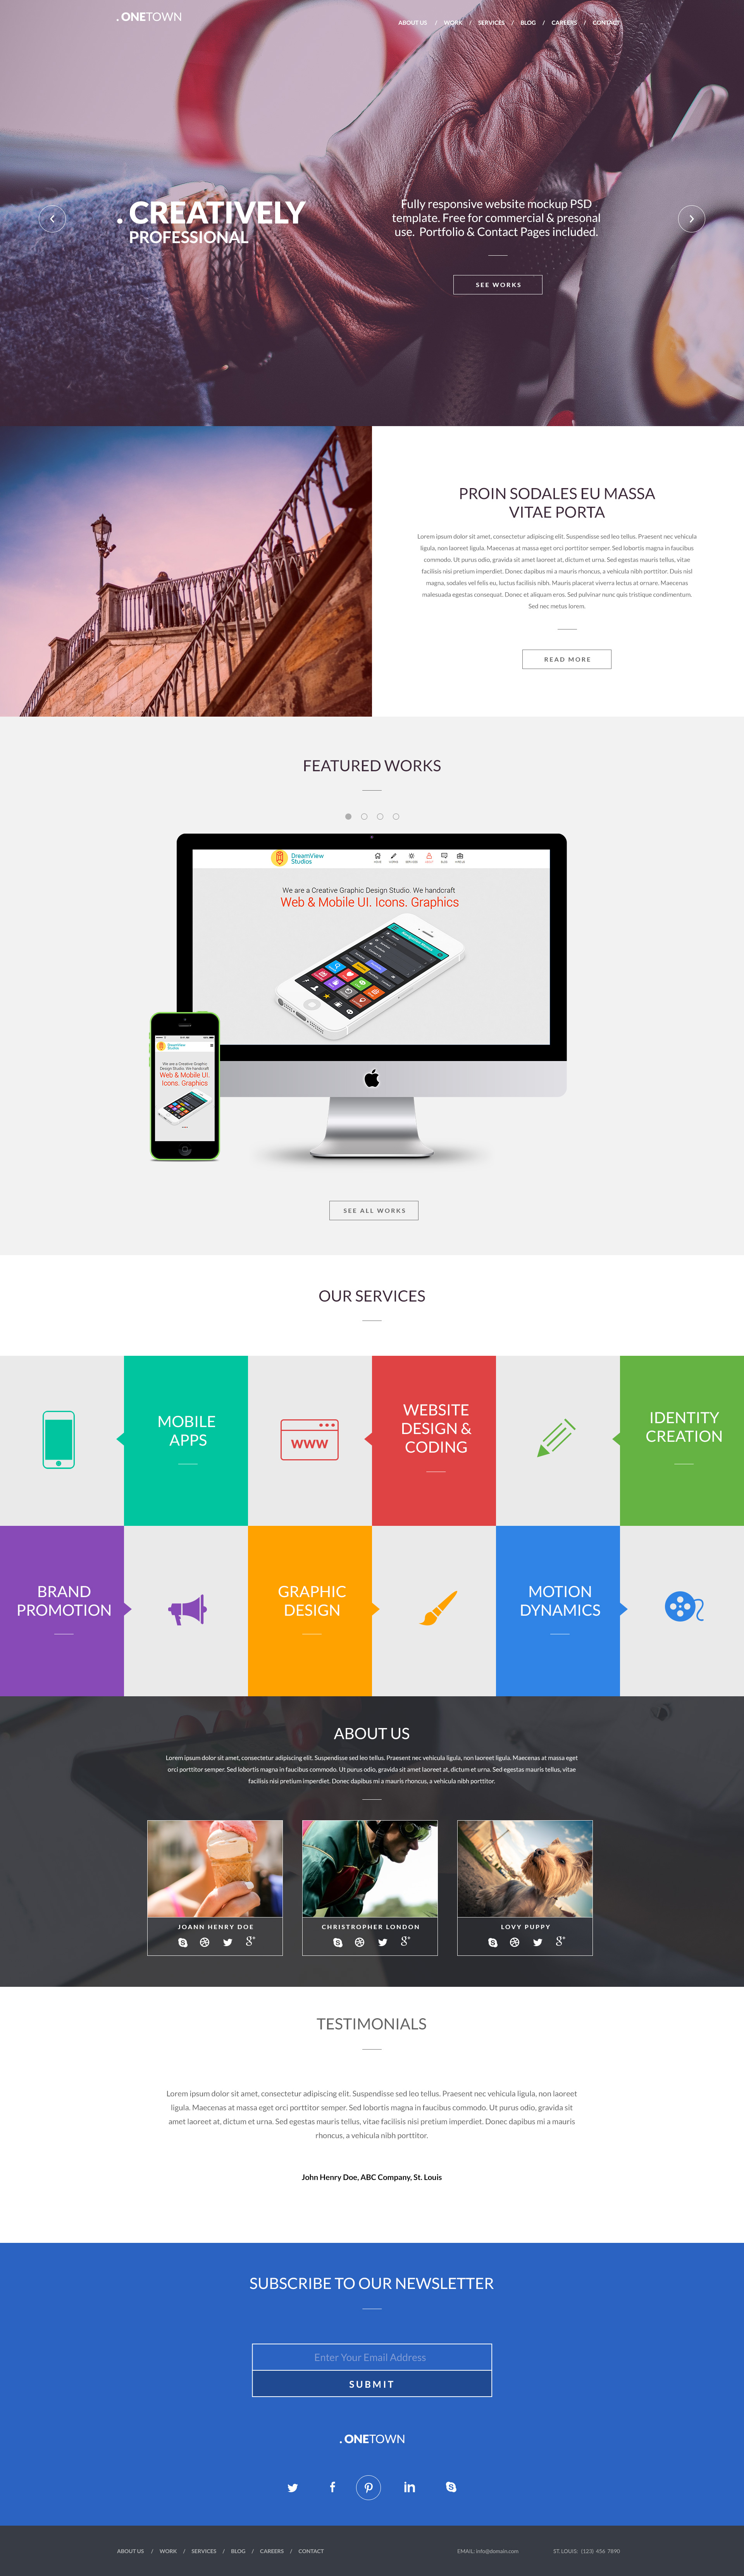 Free Responsive Website PSD Templates Pinterest Psd Templates - Full responsive website templates